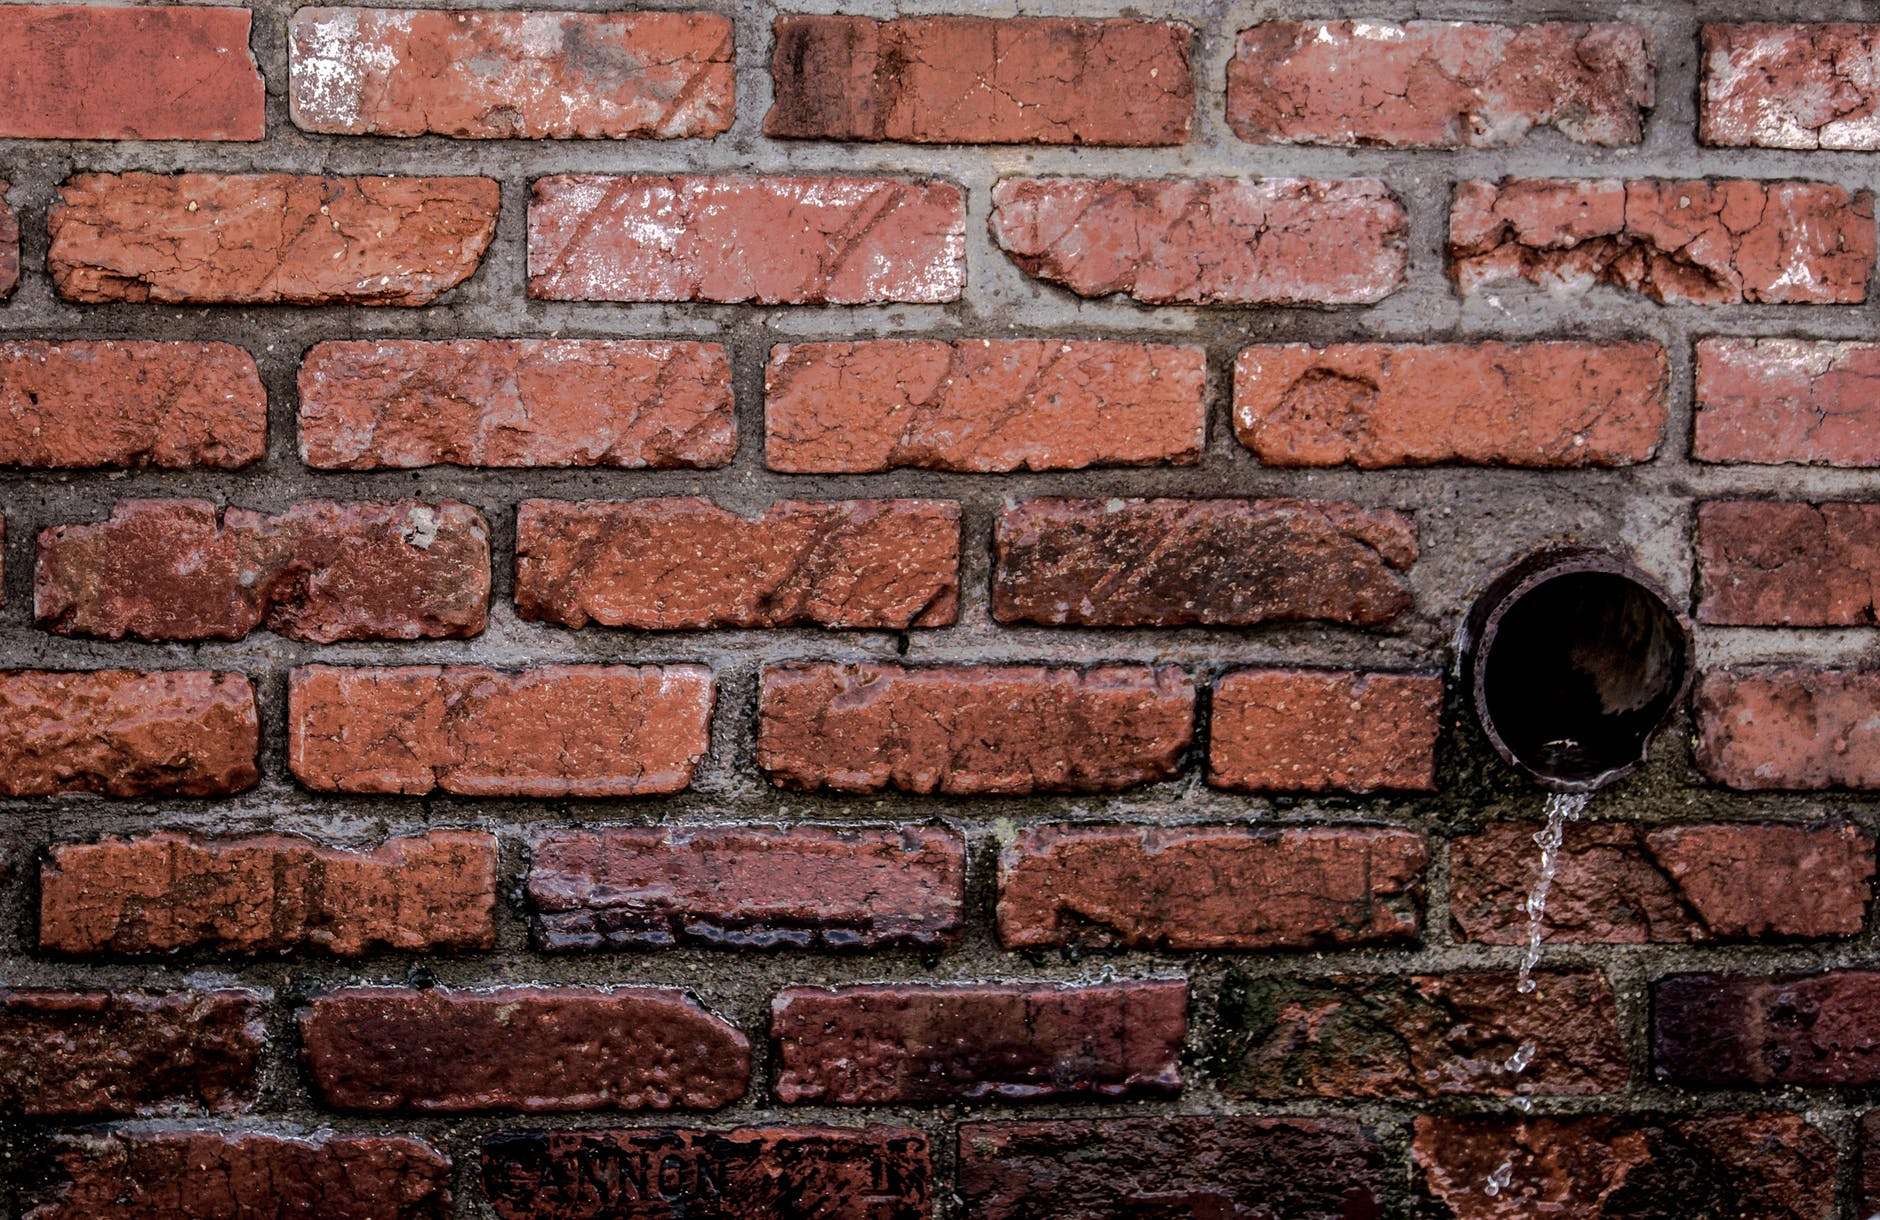 Brick wall and pipe drainage